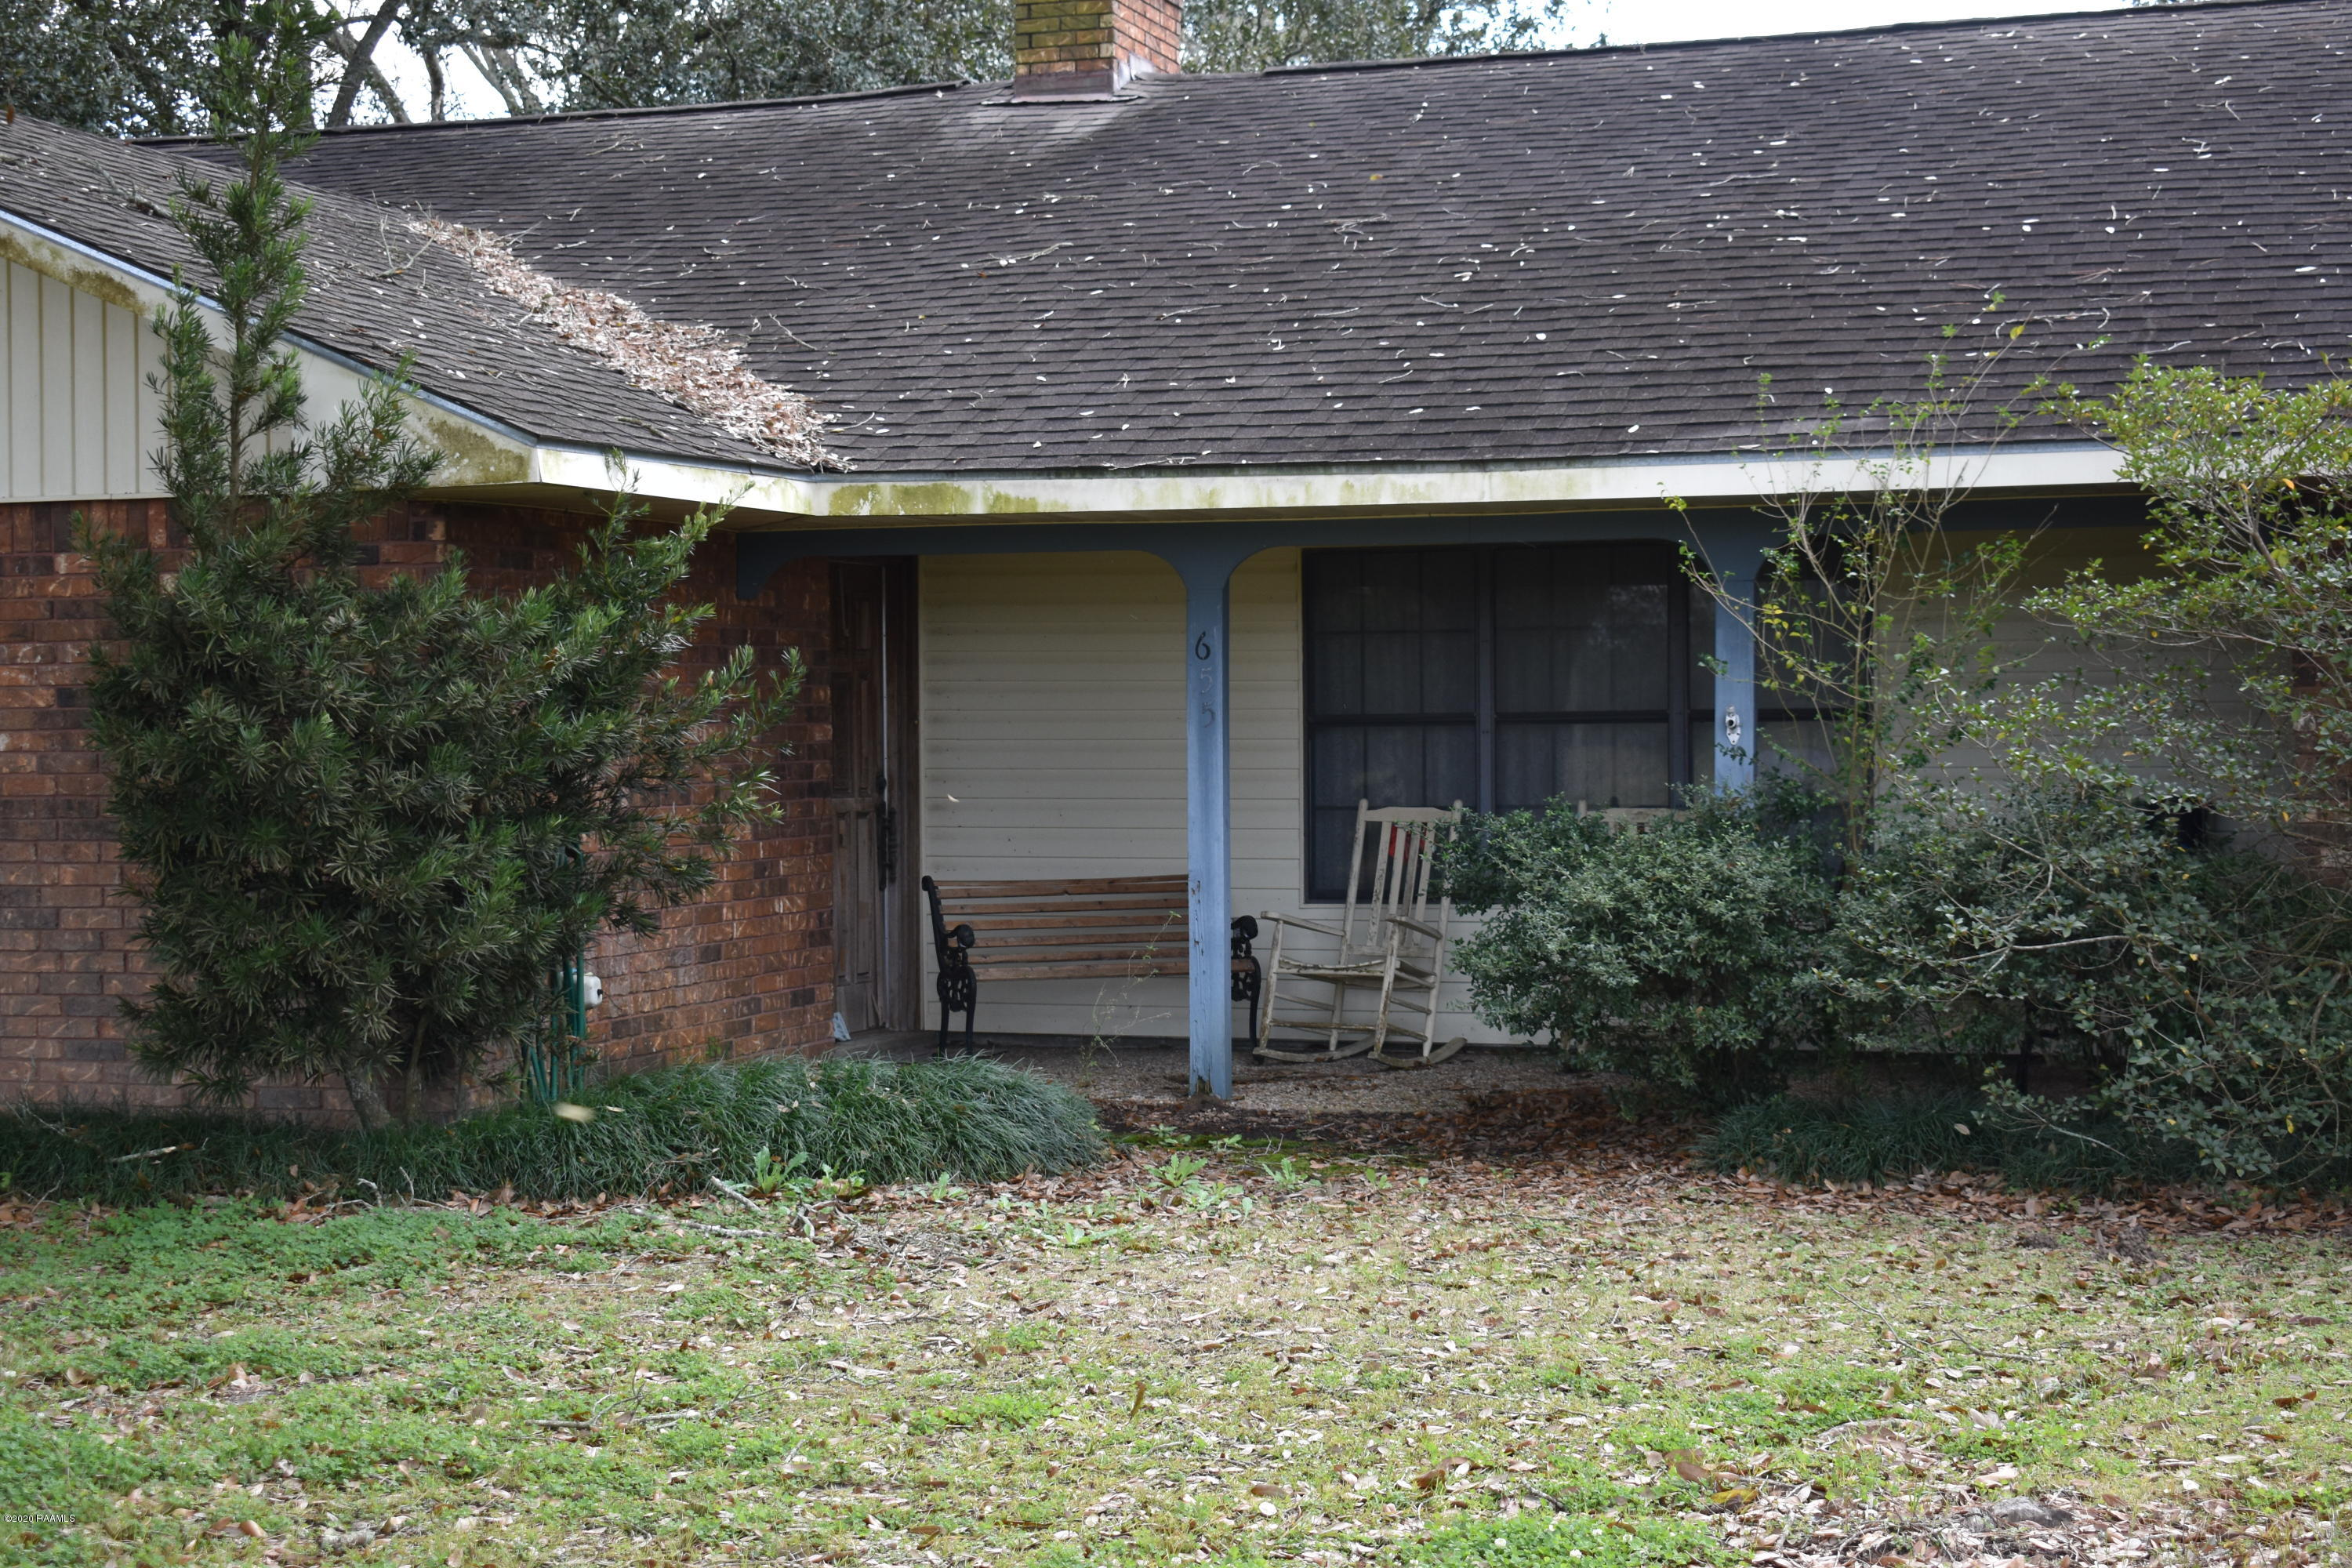 655 Saddle Drive, Eunice, LA 70535 Photo #3